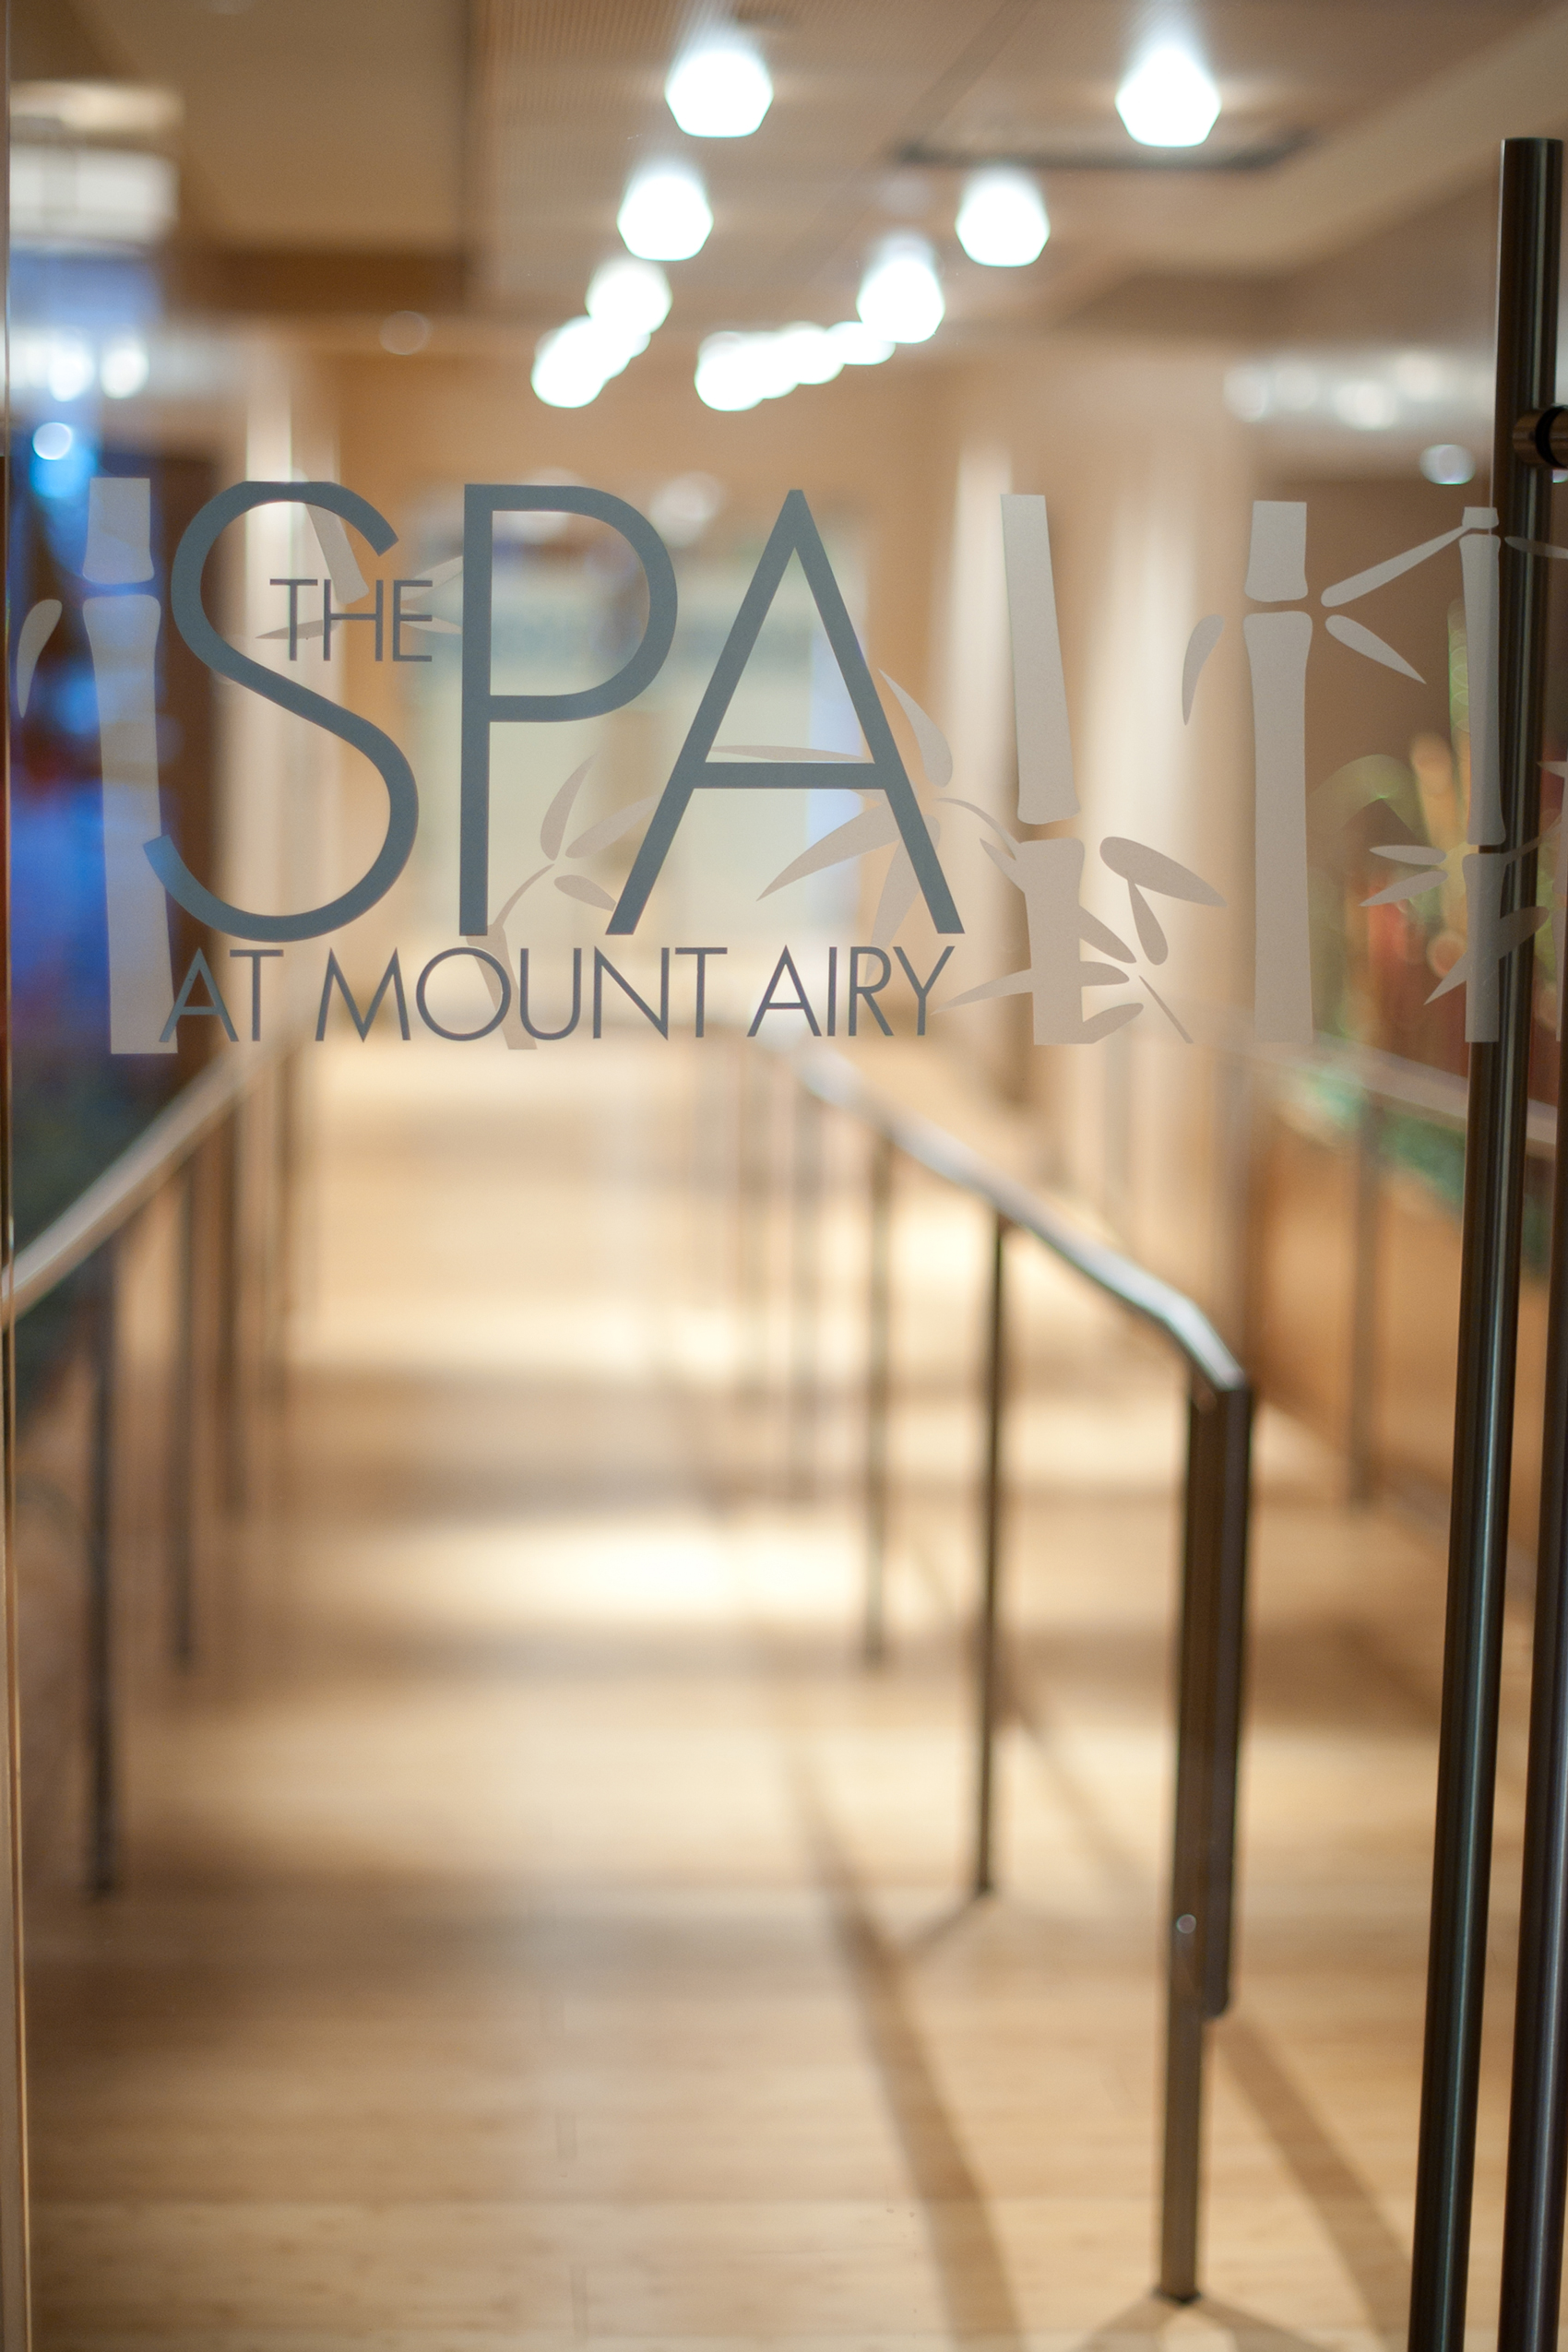 Mount Airy Casino Spa